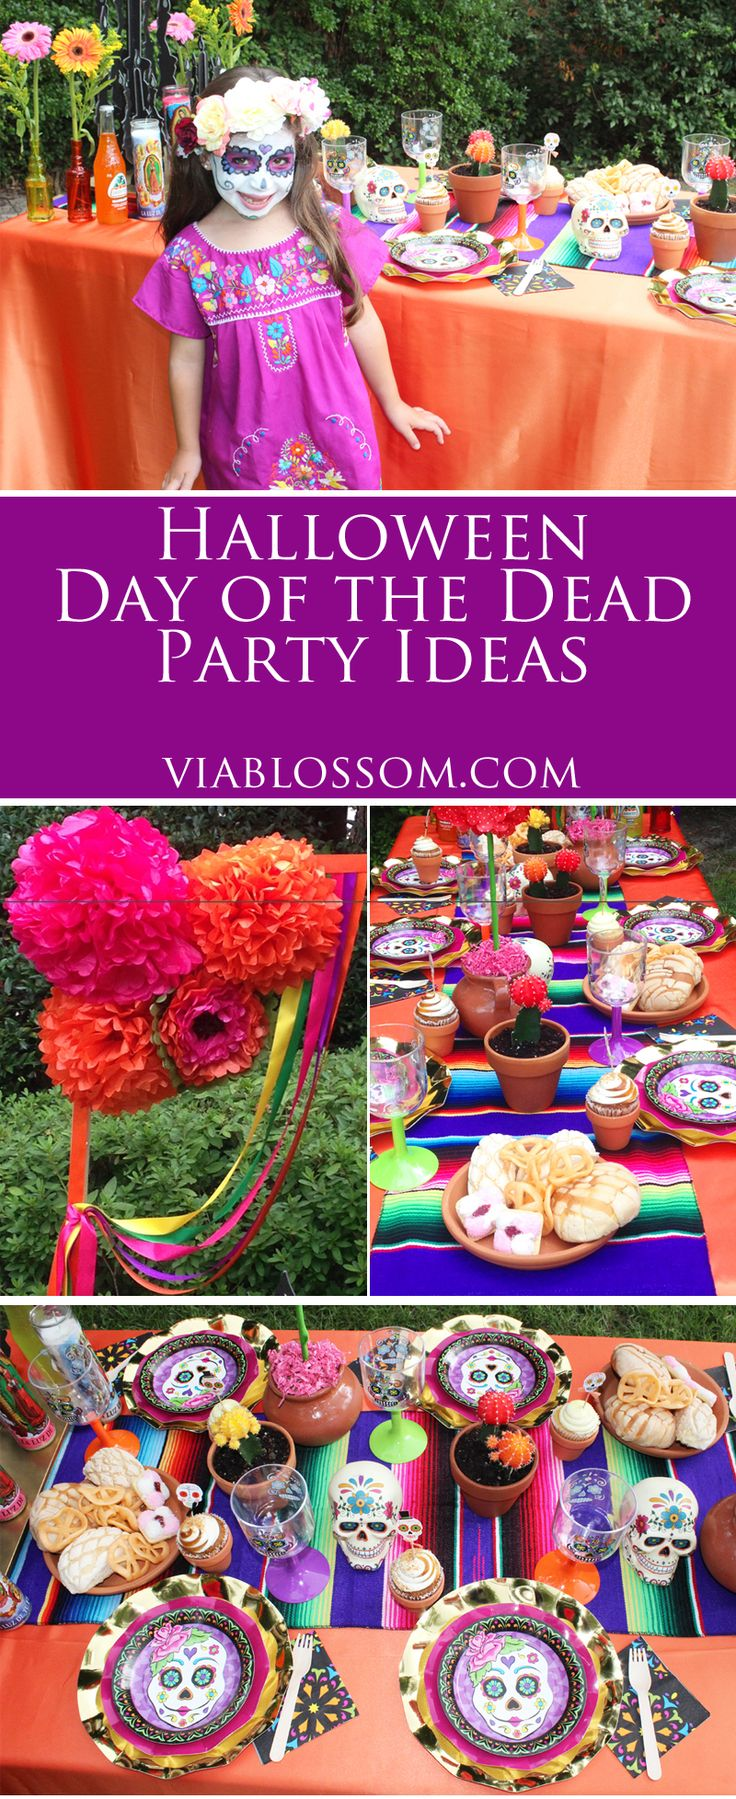 Day of the Dead Party ideas and decorations on the Via Blossom Blog!  Just in time for Halloween!